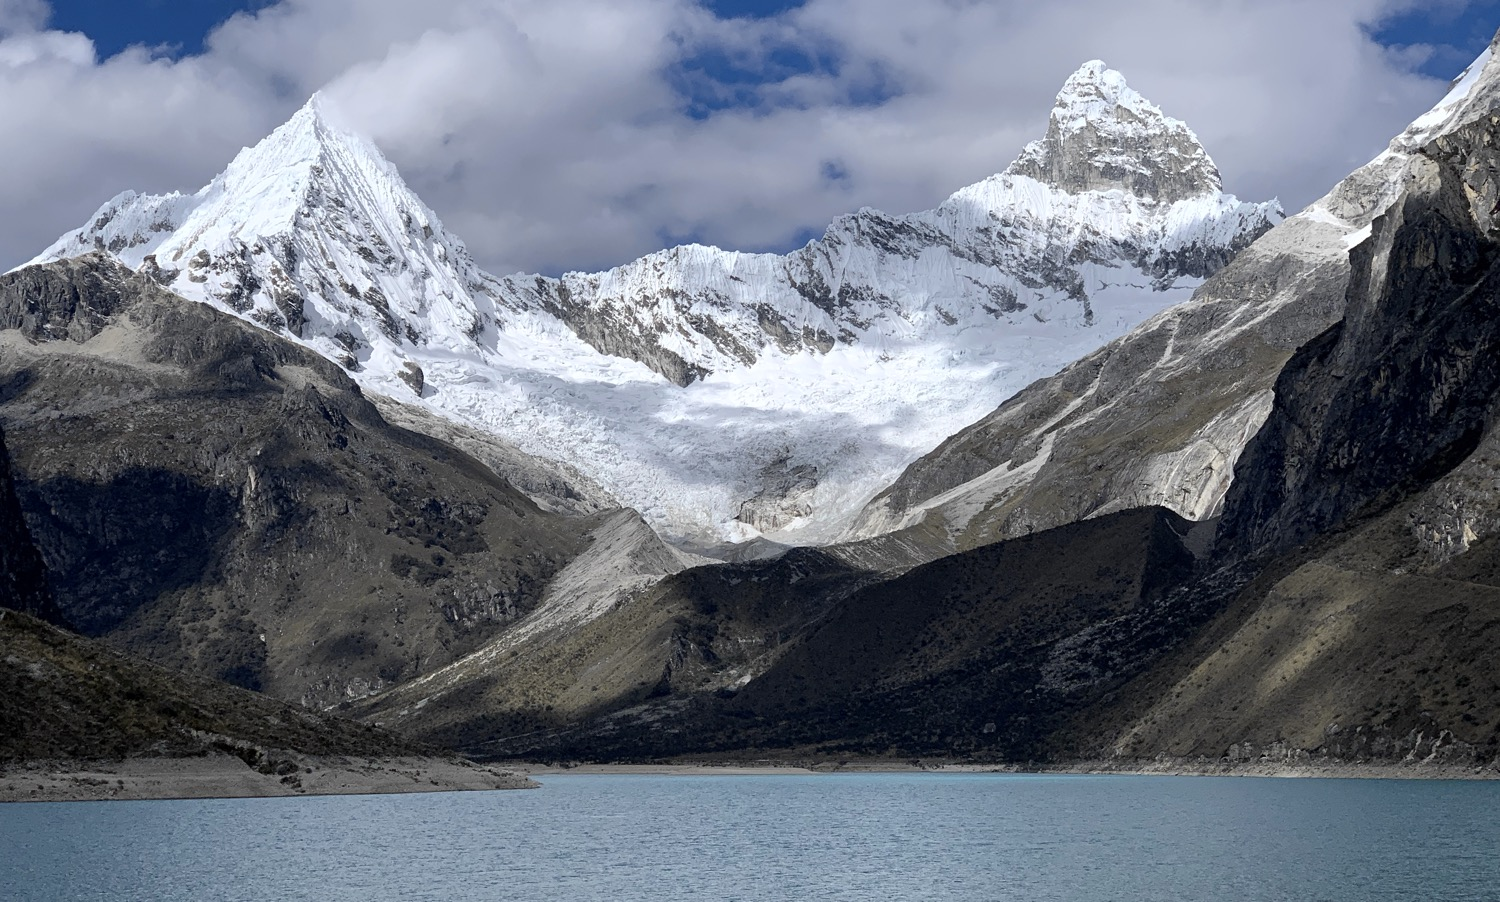 Laguna Paron at 13,750 ft. is amazing. I believe that is the famous Paramount Pictures peak on the left.